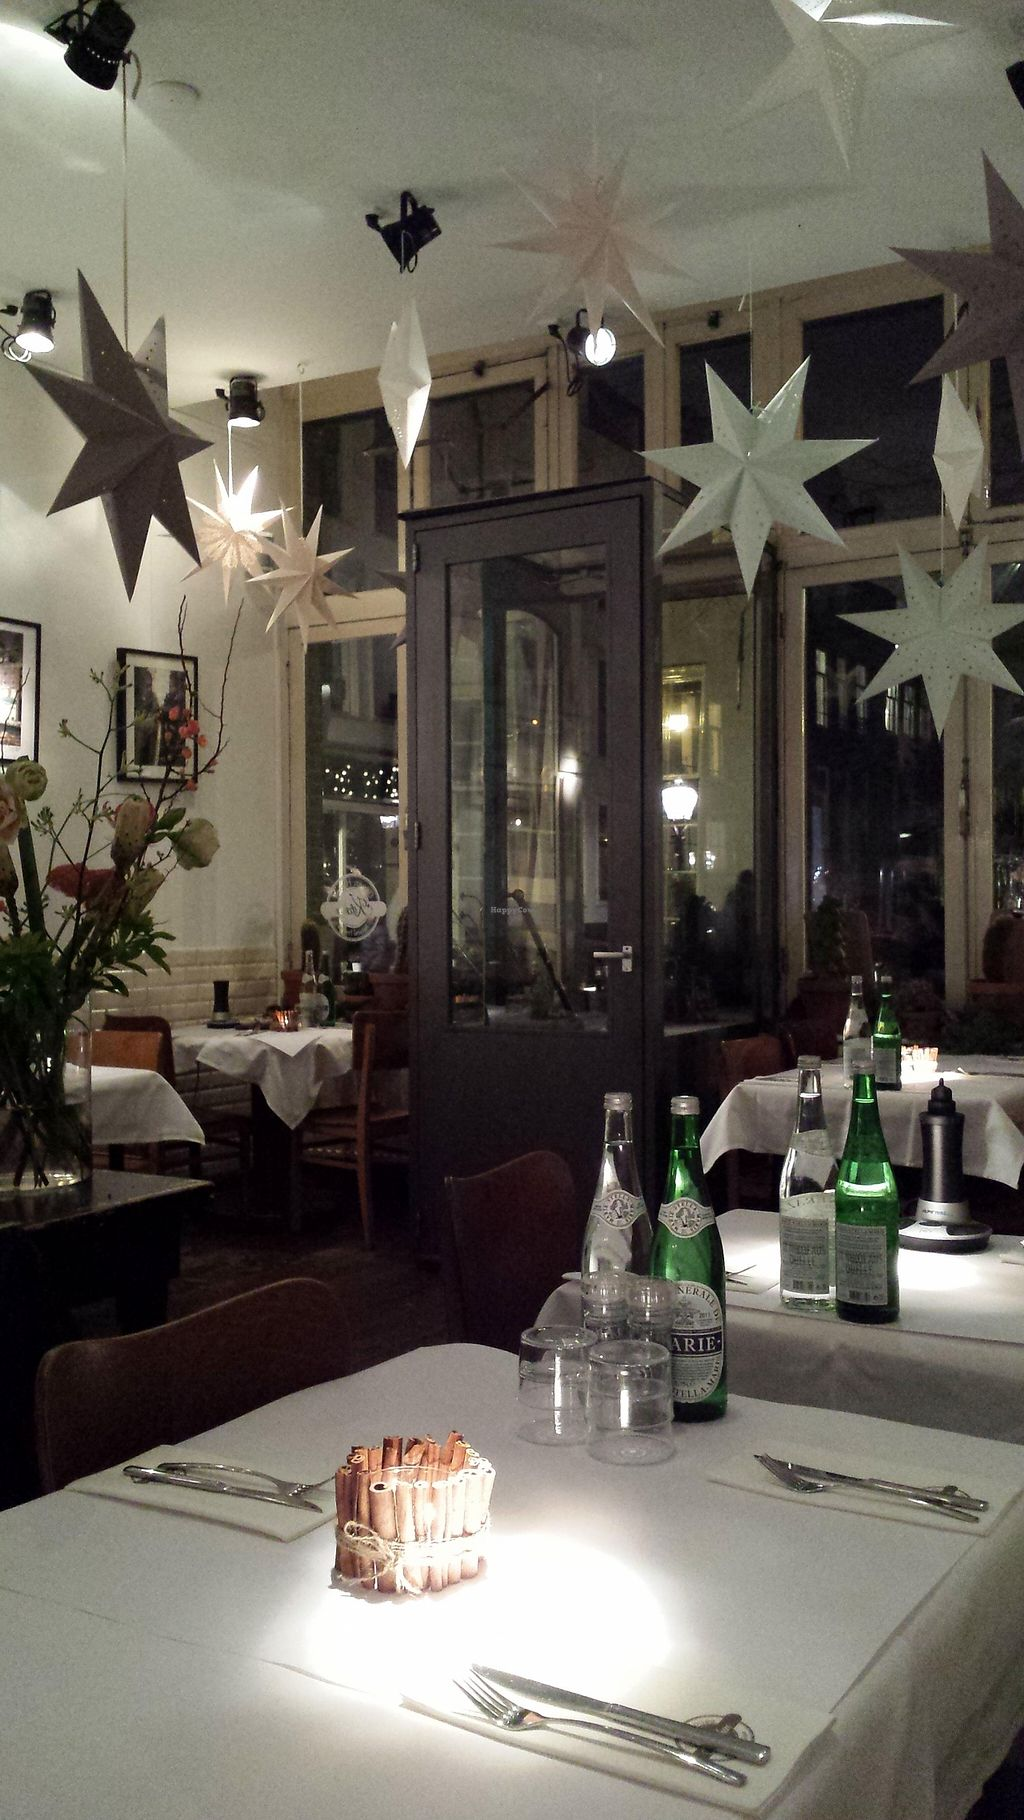 """Photo of CLOSED: Green House Kitchen  by <a href=""""/members/profile/kathyv181"""">kathyv181</a> <br/>restaurant <br/> January 3, 2016  - <a href='/contact/abuse/image/67864/130927'>Report</a>"""